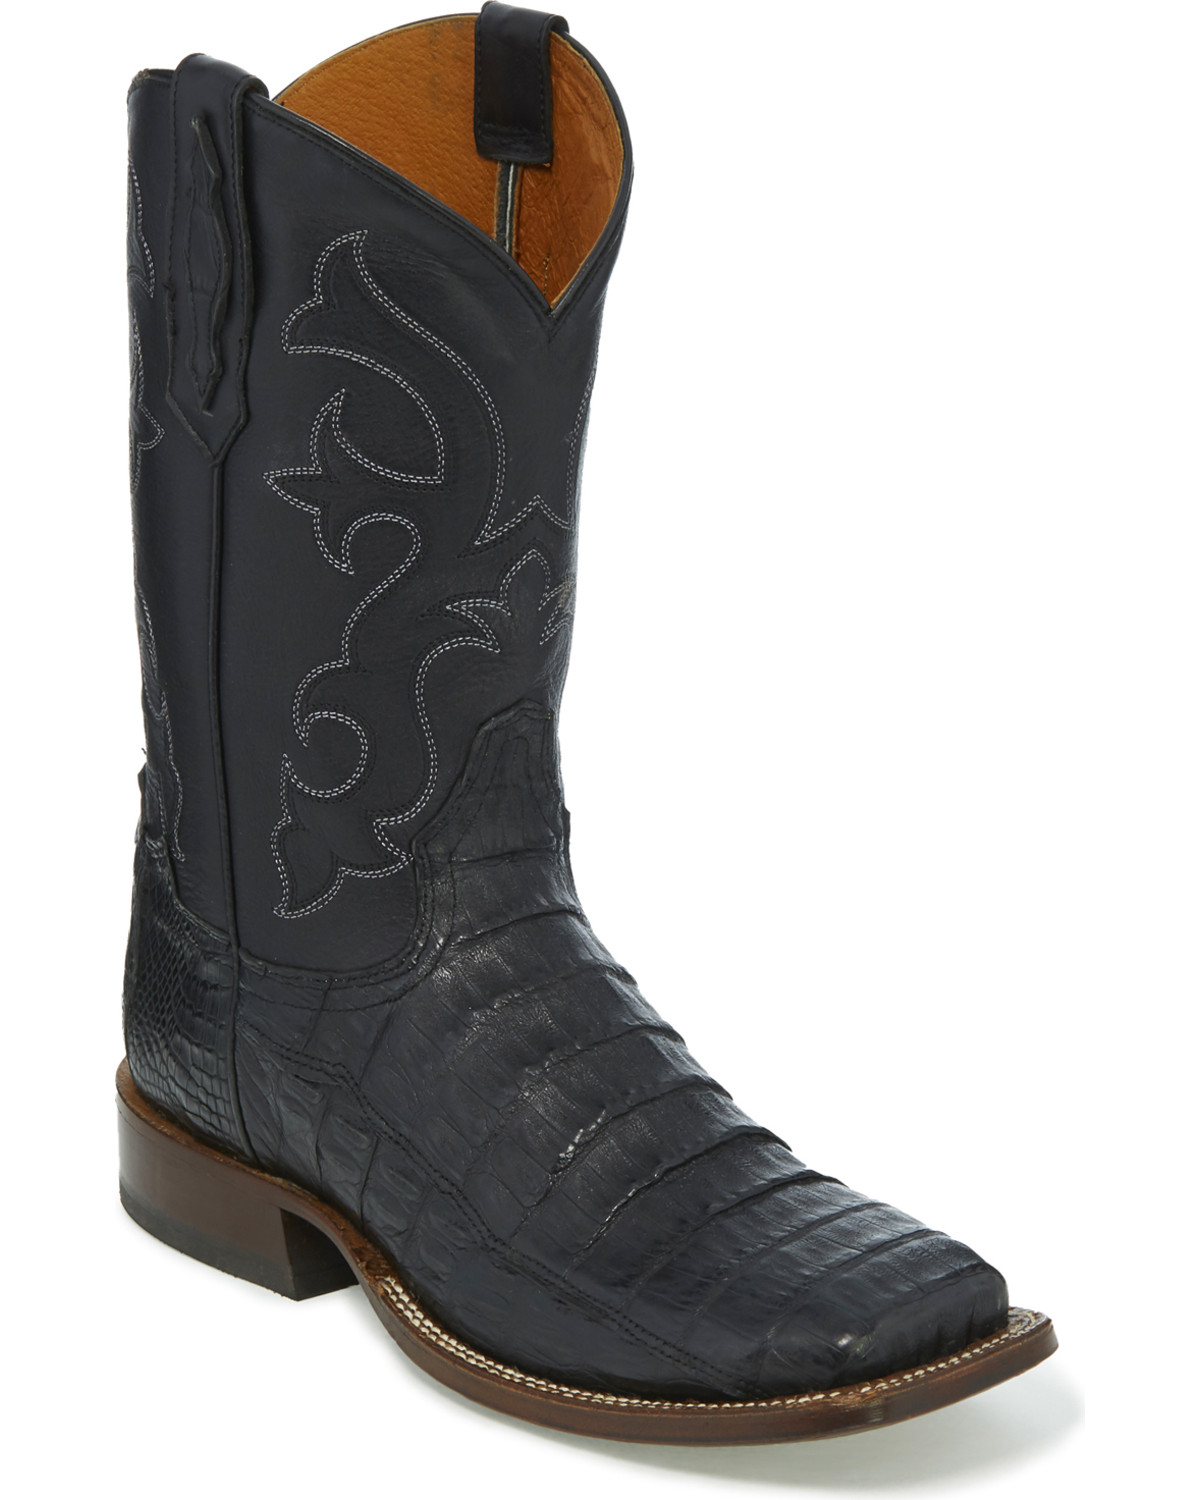 Tony Lama Men S Black Burnished Caiman Belly Cowboy Boots